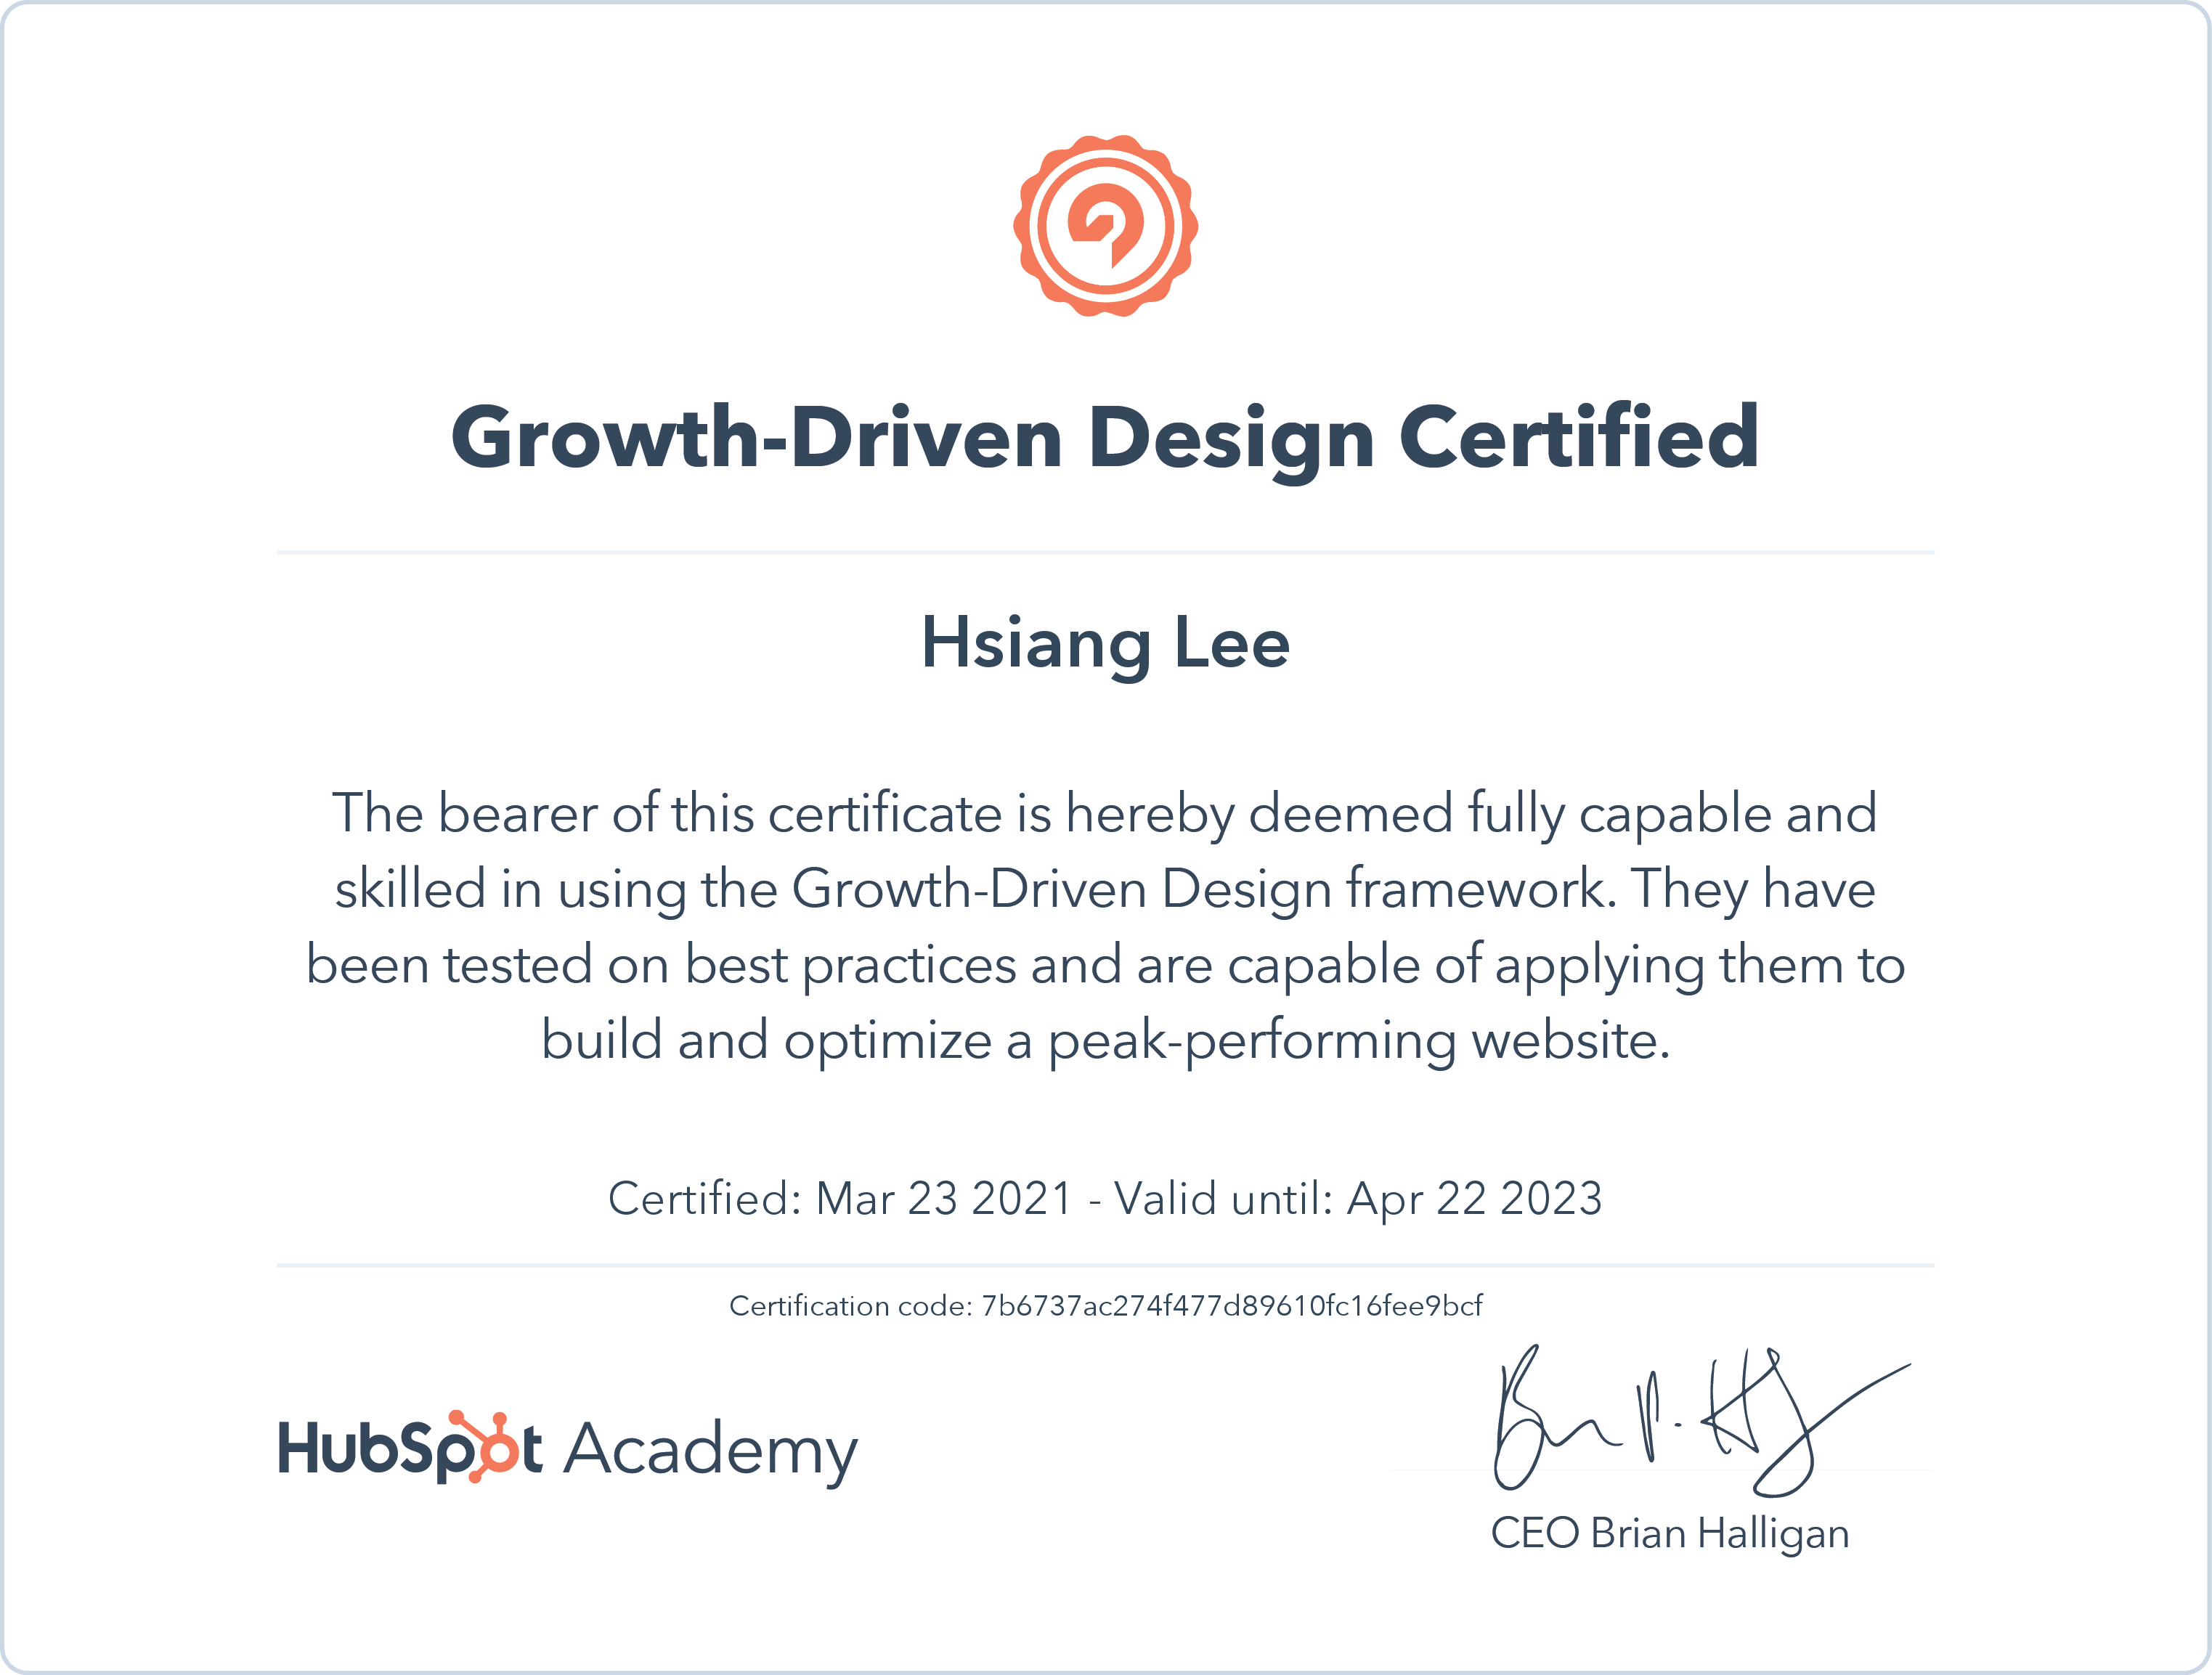 growth-driven-design-certified_hsiang